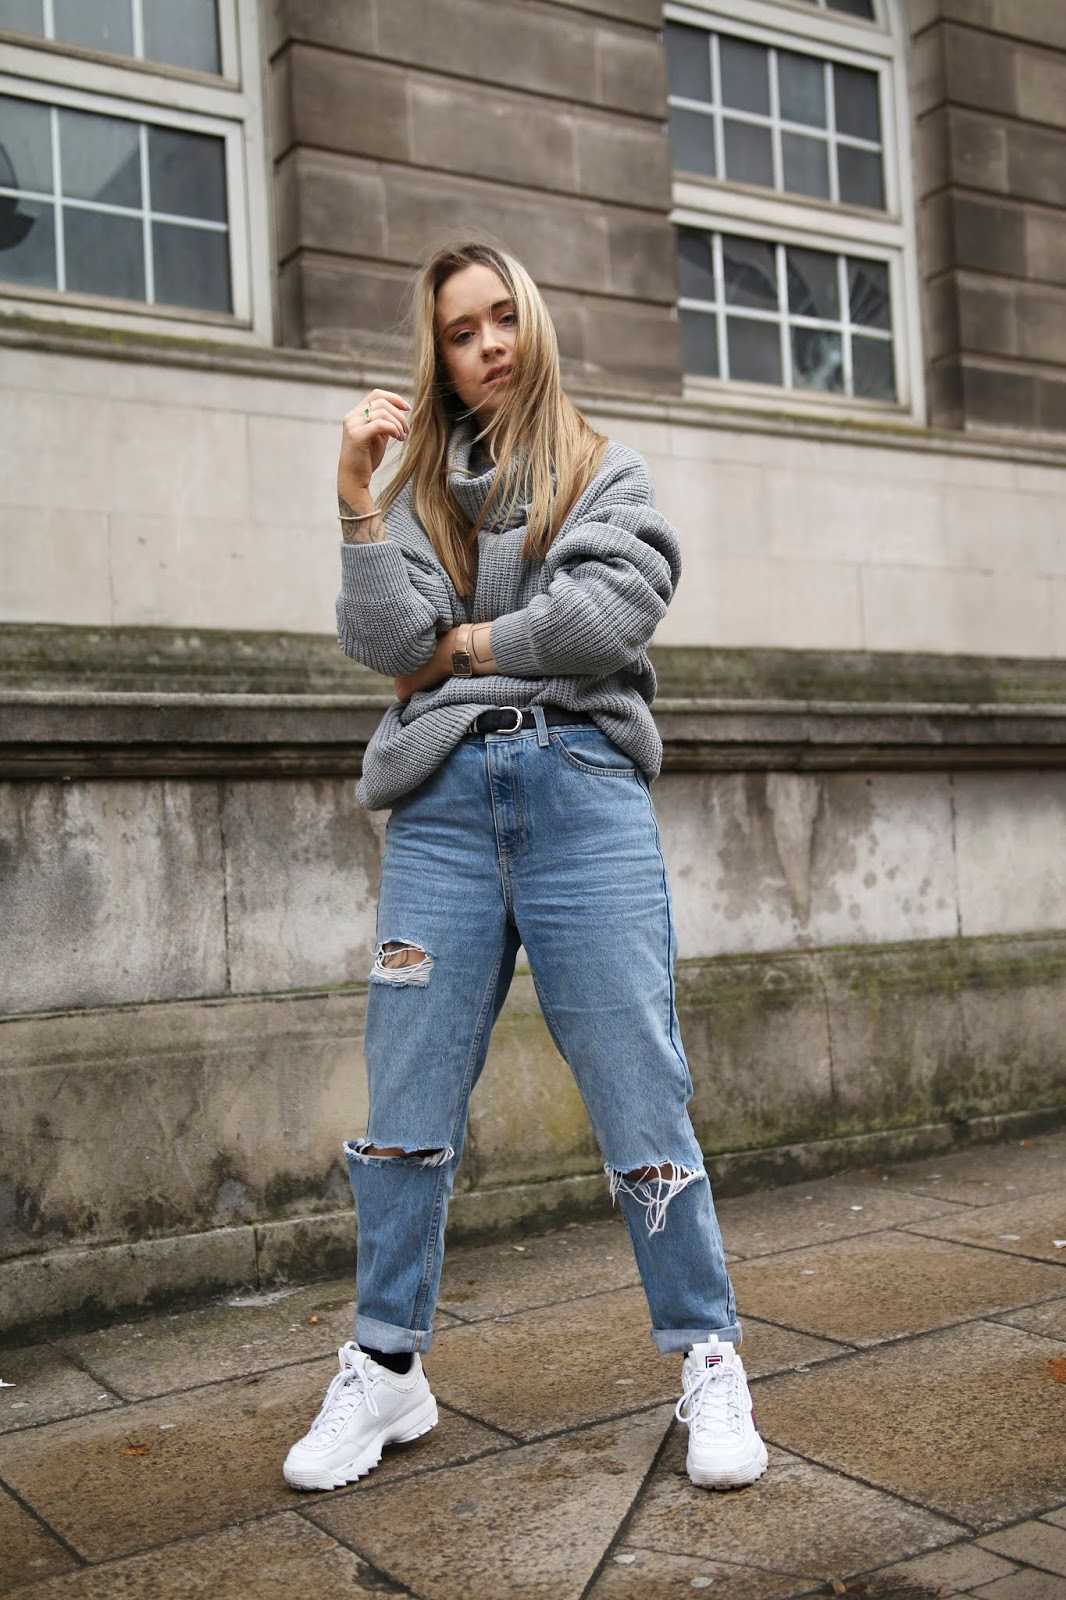 UK fashion blogger Lucy Love styles Femme Luxe